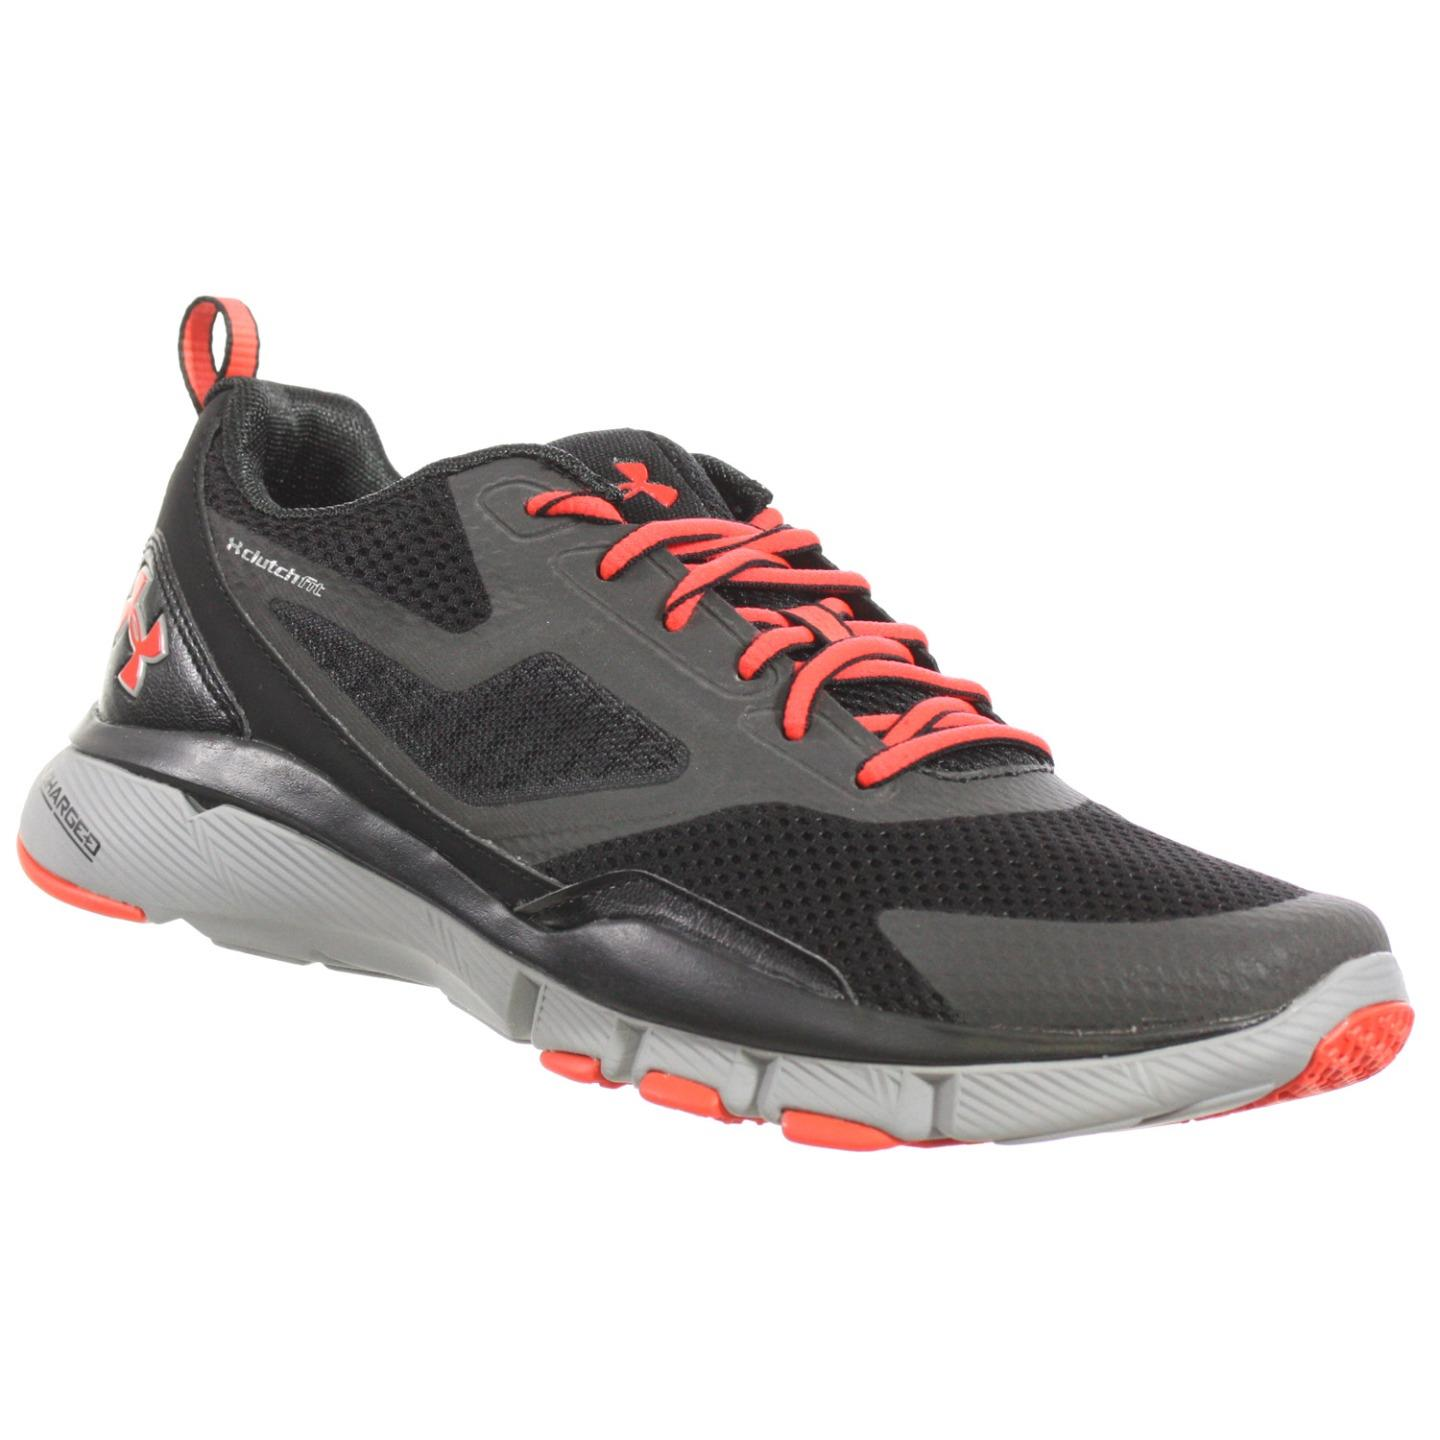 Under Armour MENS ATHLETIC SHOES CHARGED ONE TR CHARCOAL ...